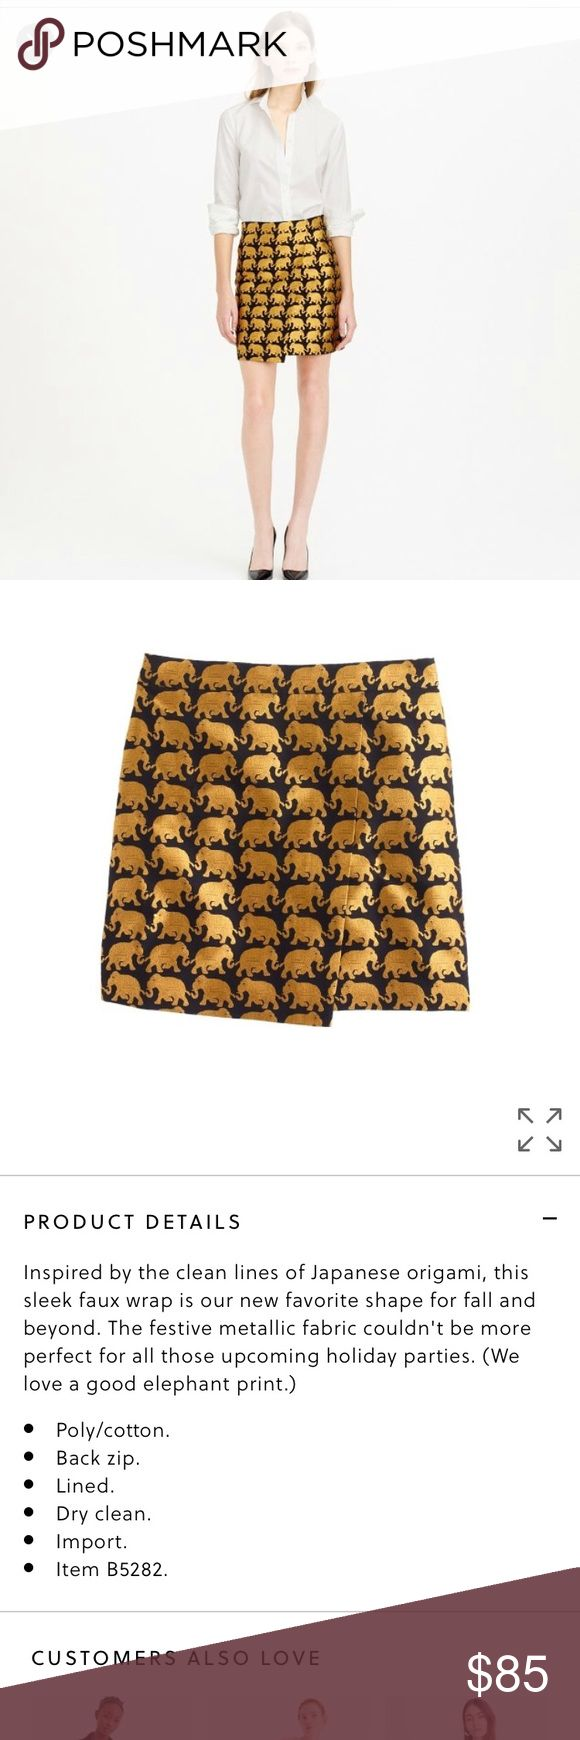 J crew origami skirt in elephant parade Never worn. No trades.  Price is firm unless bundled. J. Crew Skirts Mini